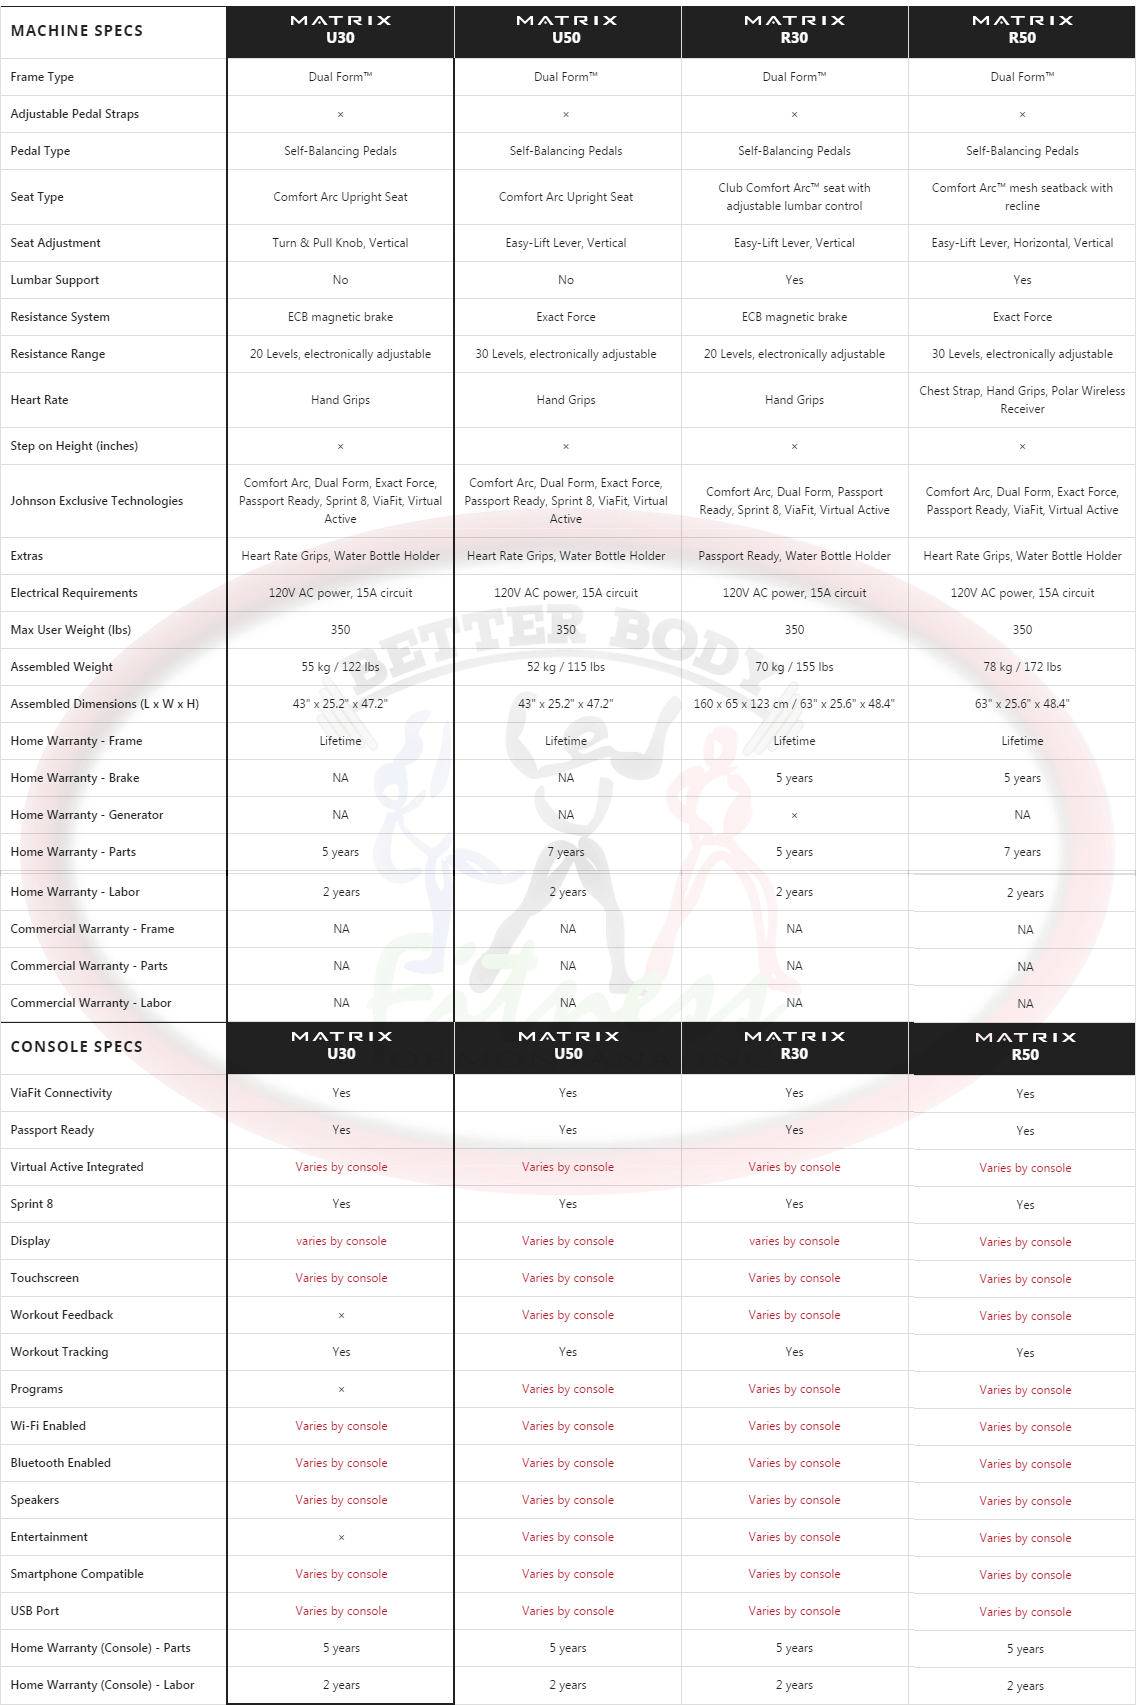 matrix_fitness_u30_comparison_specs